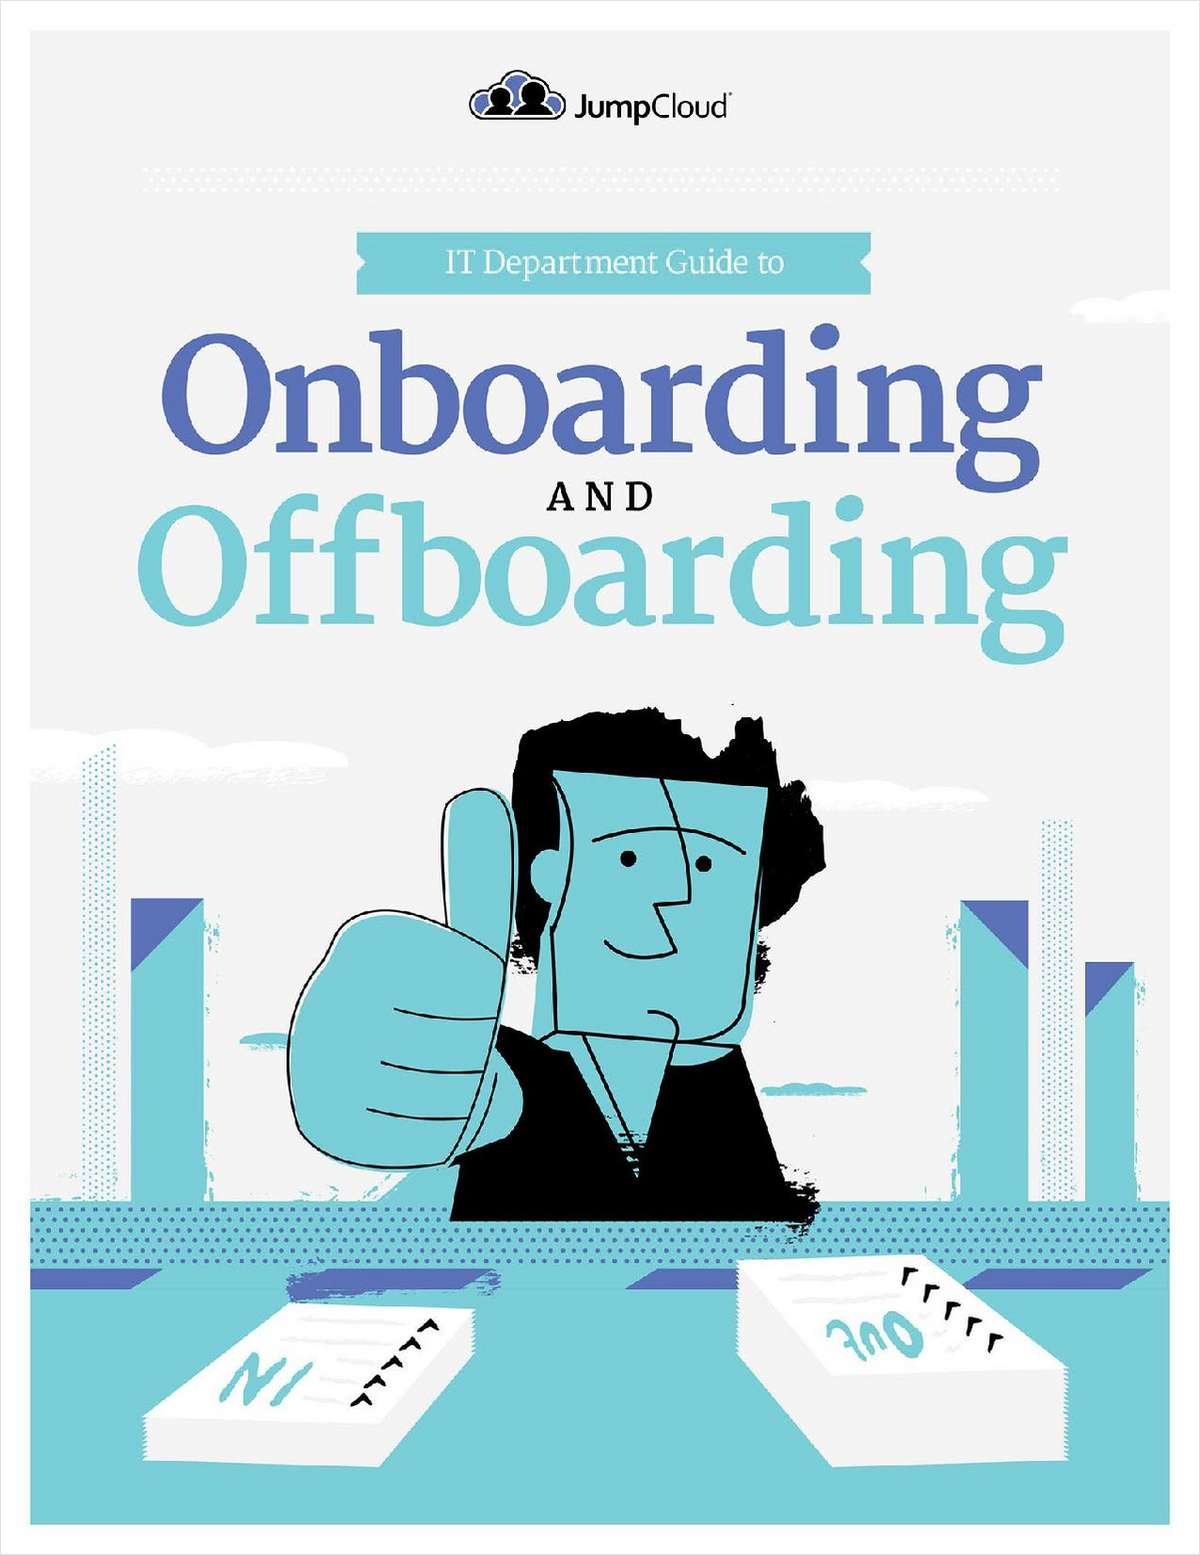 IT Department Guide to Onboarding and Offboarding Users